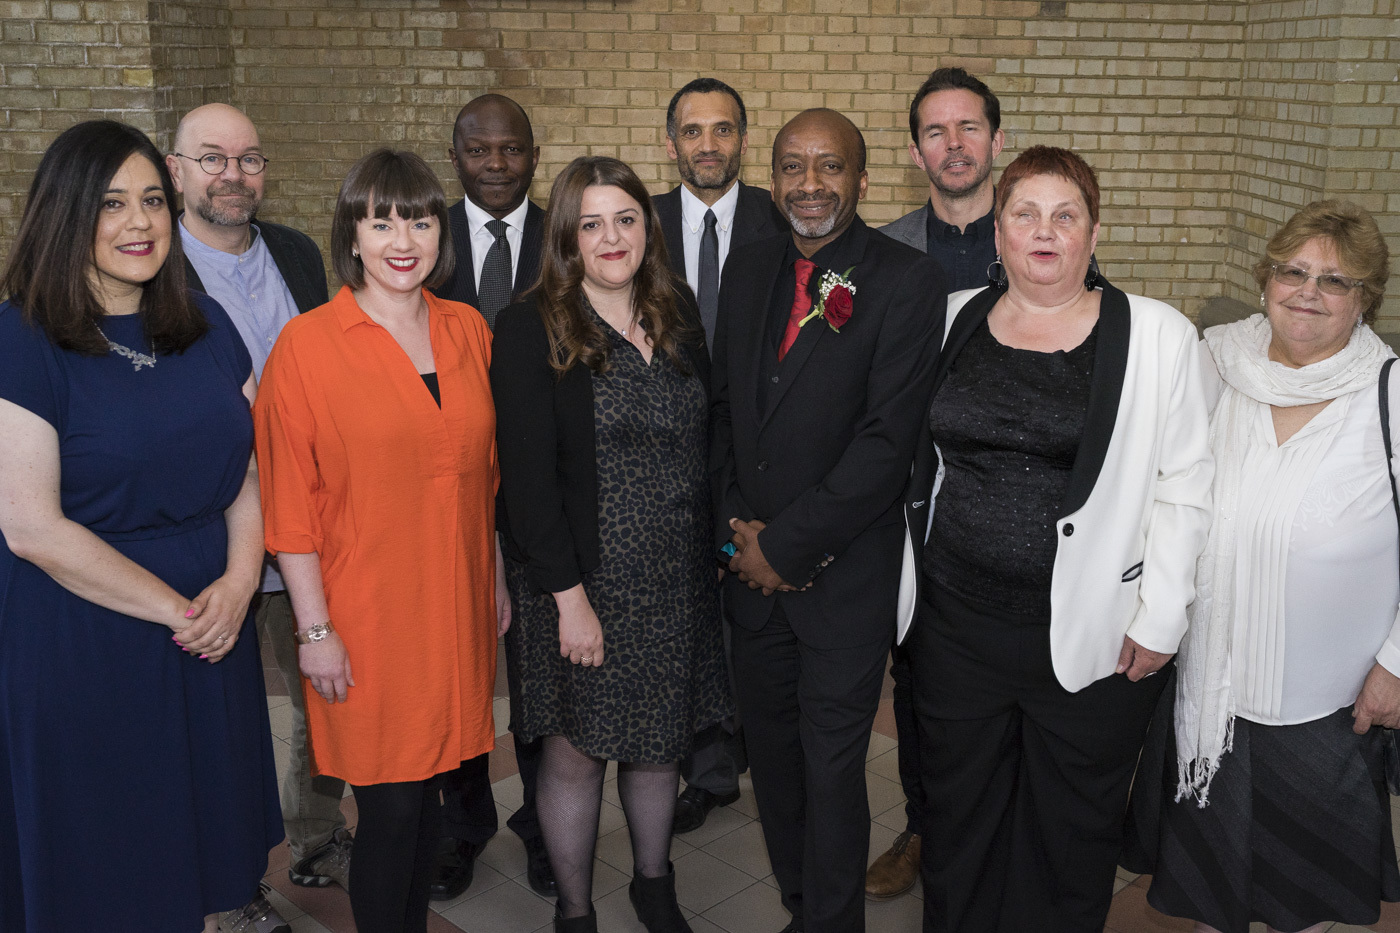 New leader Cllr Ejiofor (fourth from right) with his cabinet